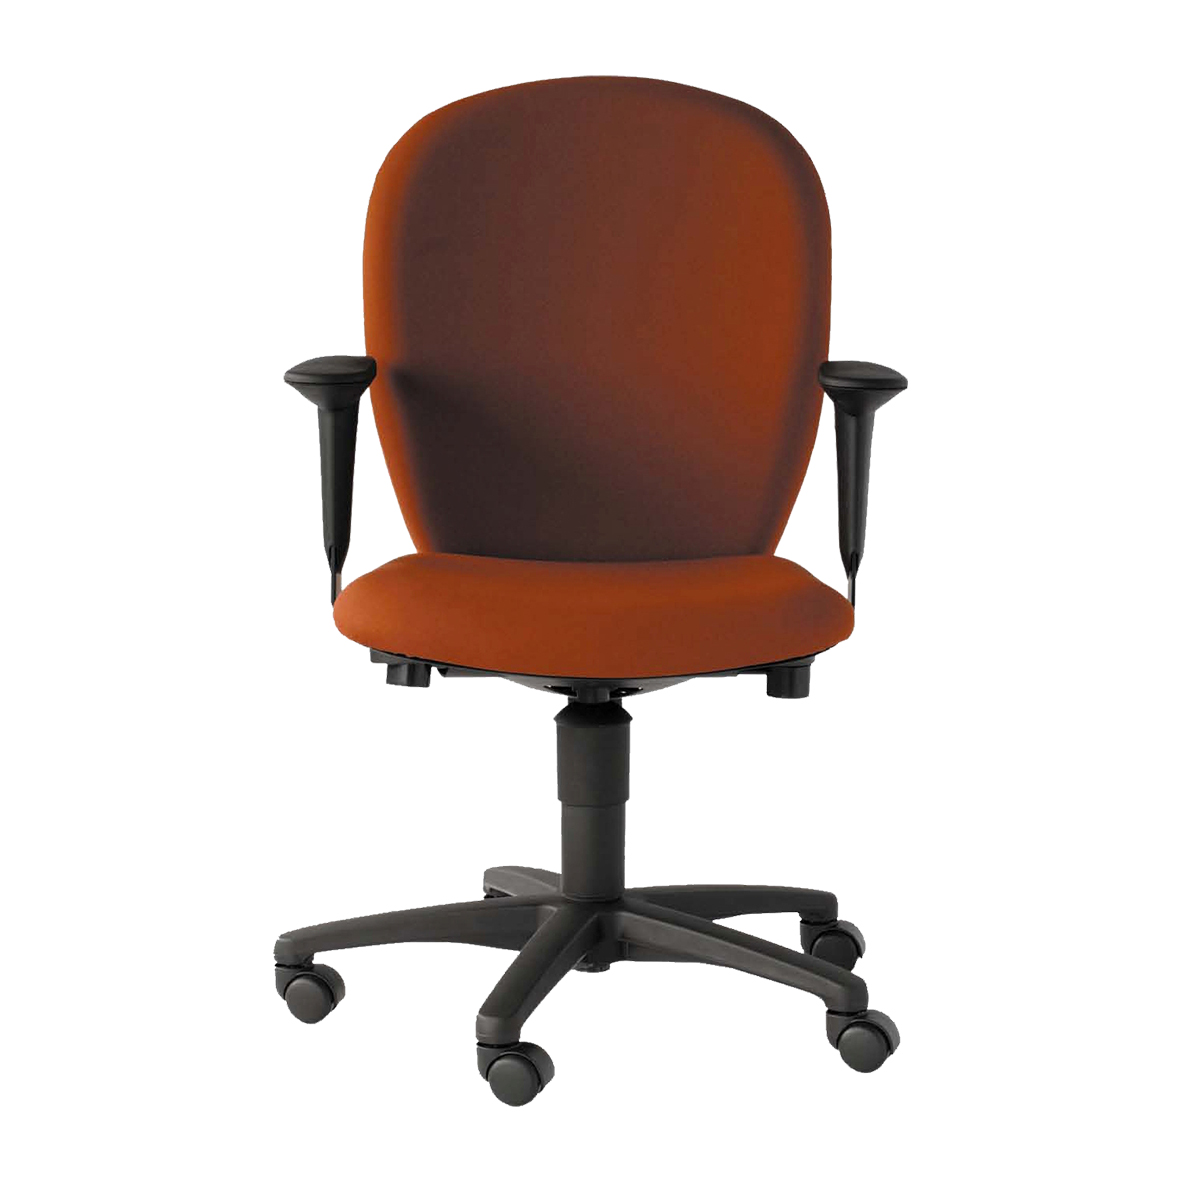 uplan sikta office chair.jpg